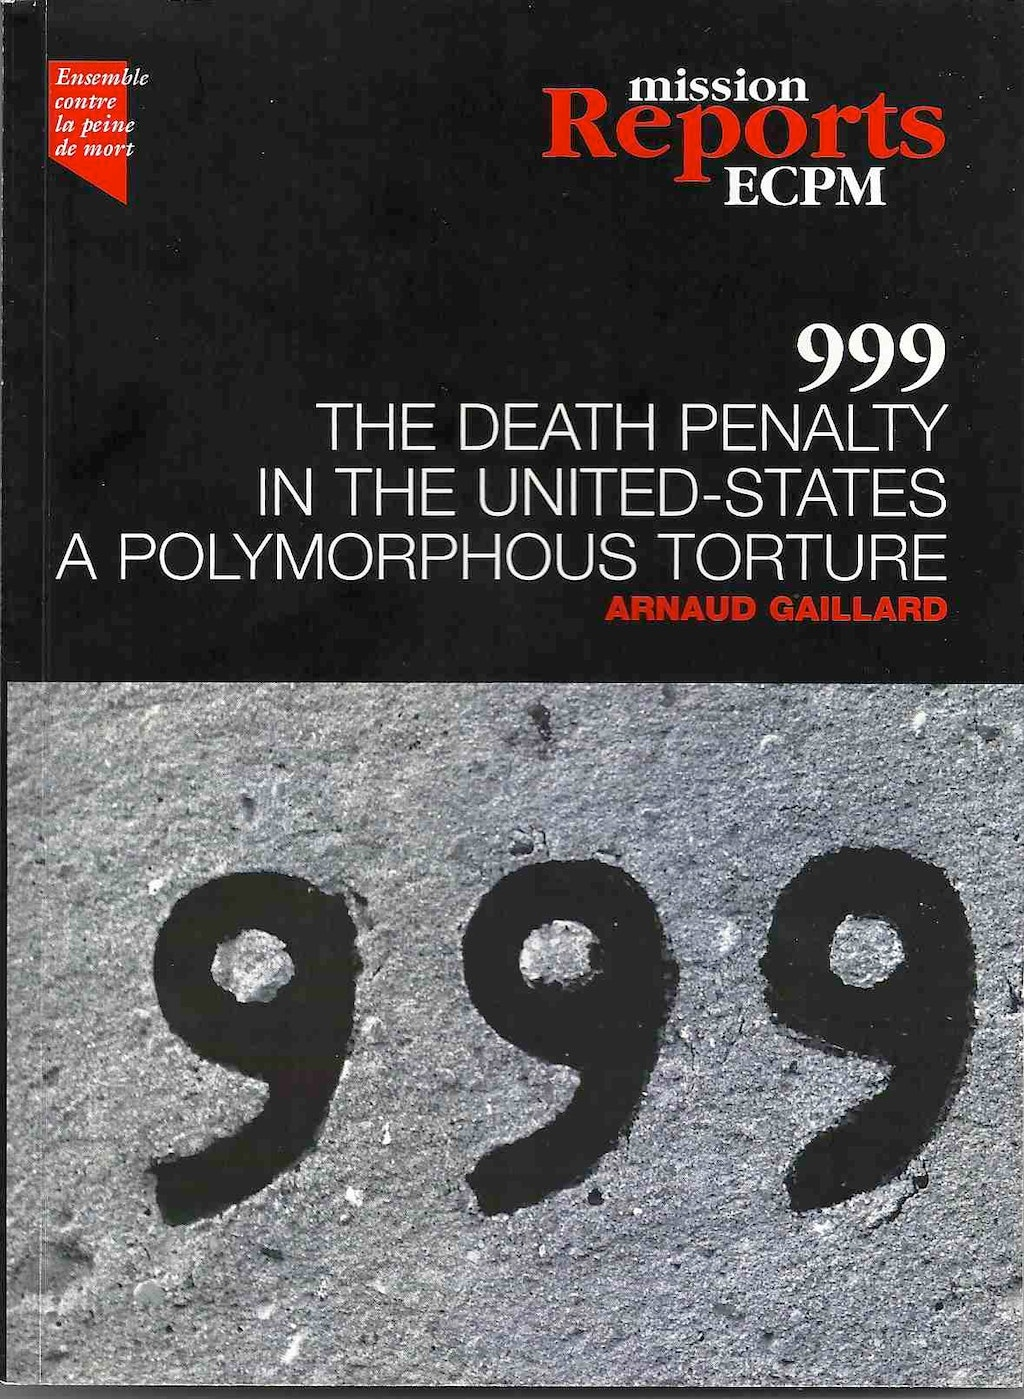 STUDIES: International Fact-Finding Report on the Death Penalty in the U.S.